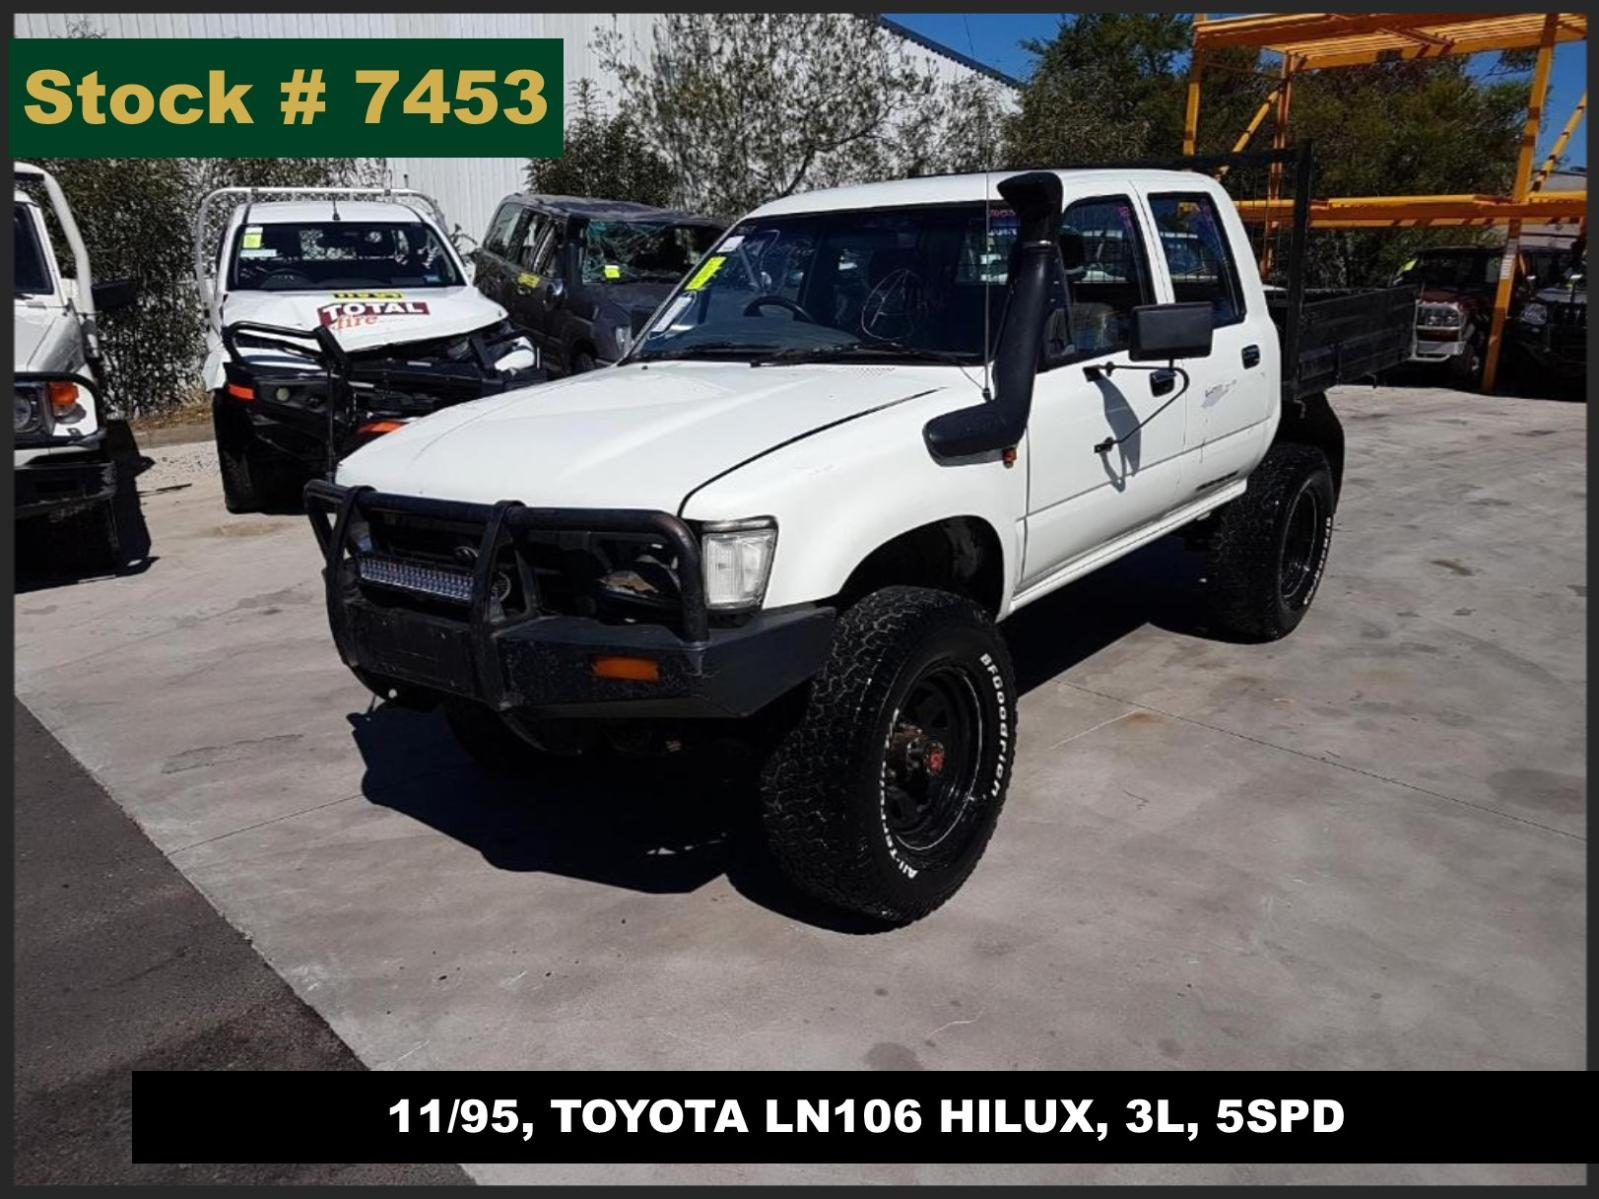 Image for a Toyota Hilux 1996 4 Door Utility